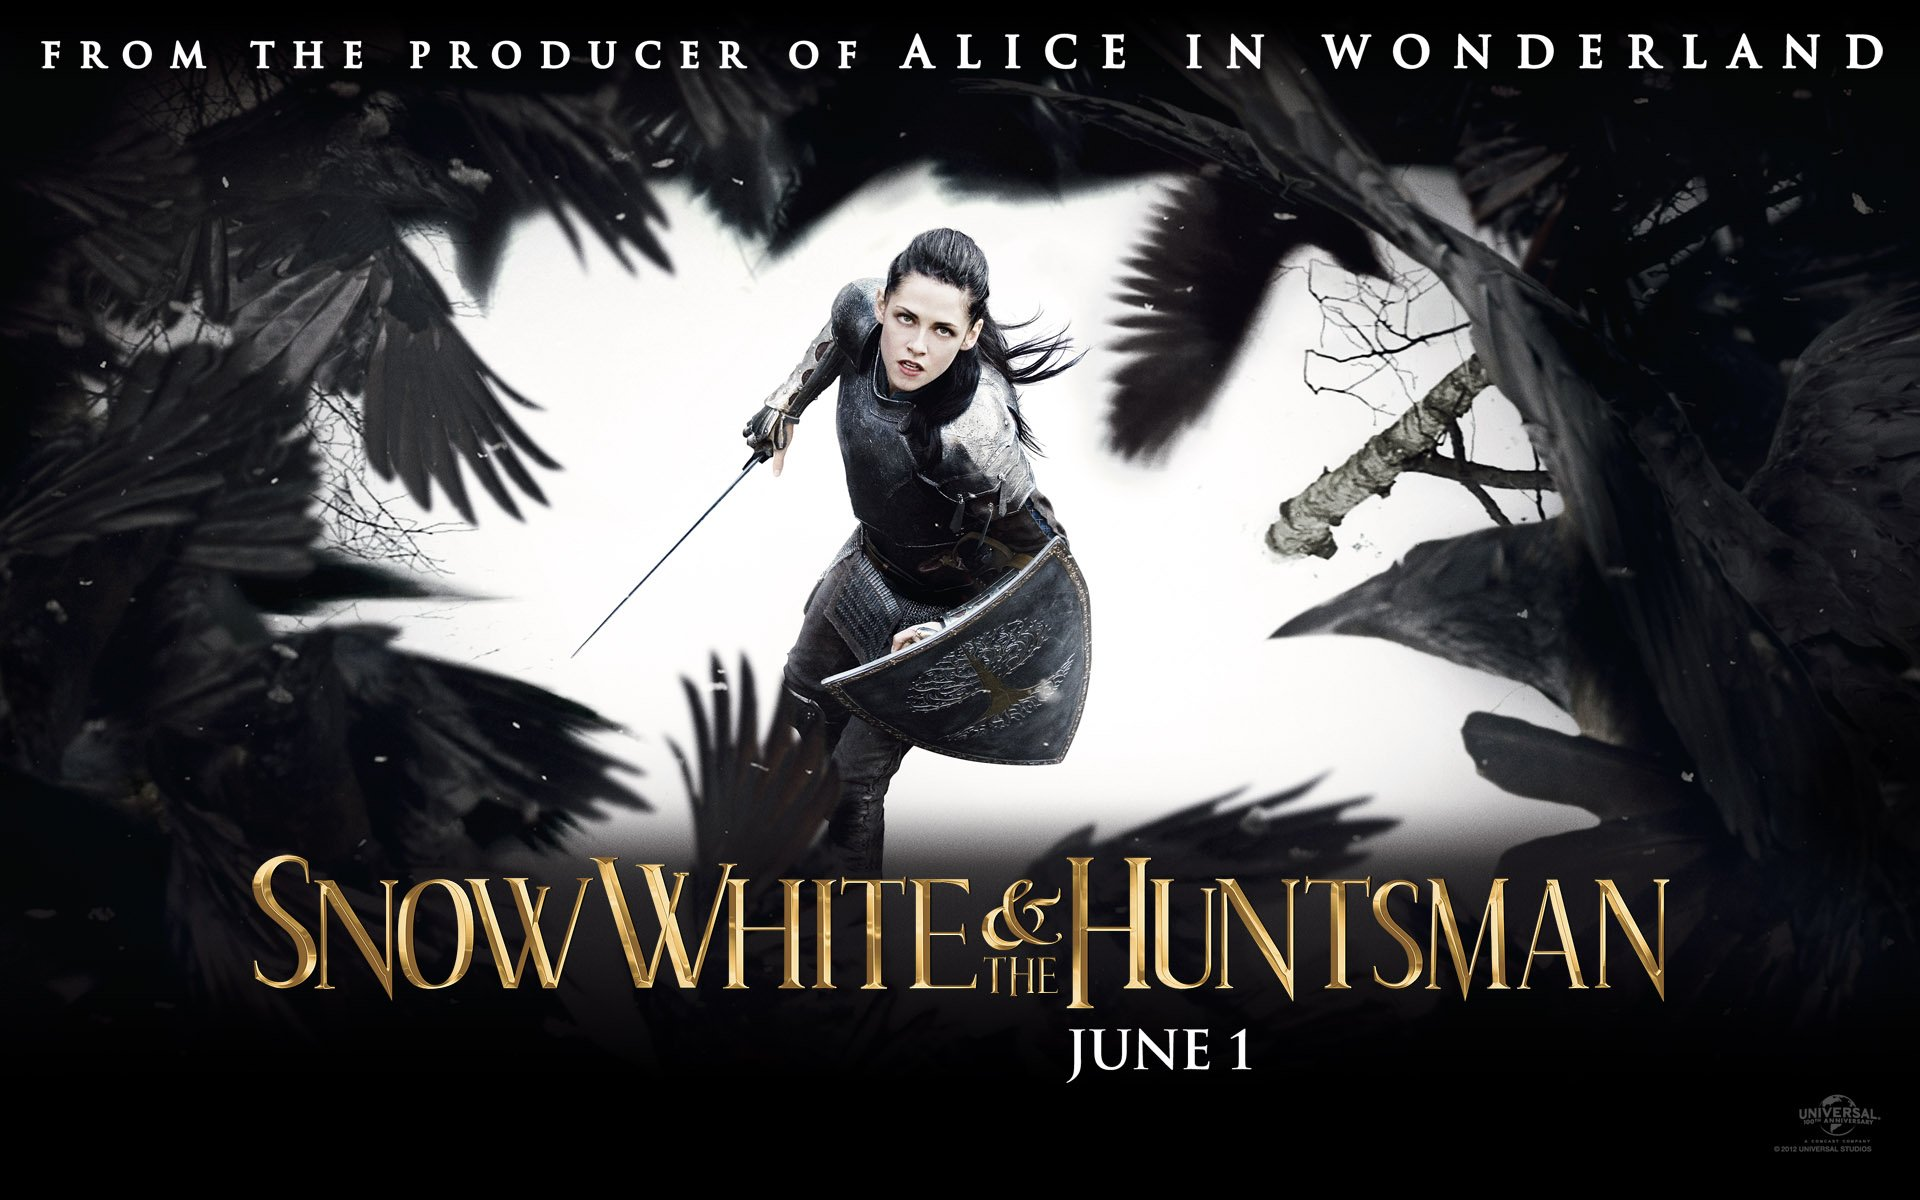 I know that no one except a Twilight fan is supposed to like Kristen Stewart, but she does what she's supposed to do in Snow White And The Huntsman as well ...